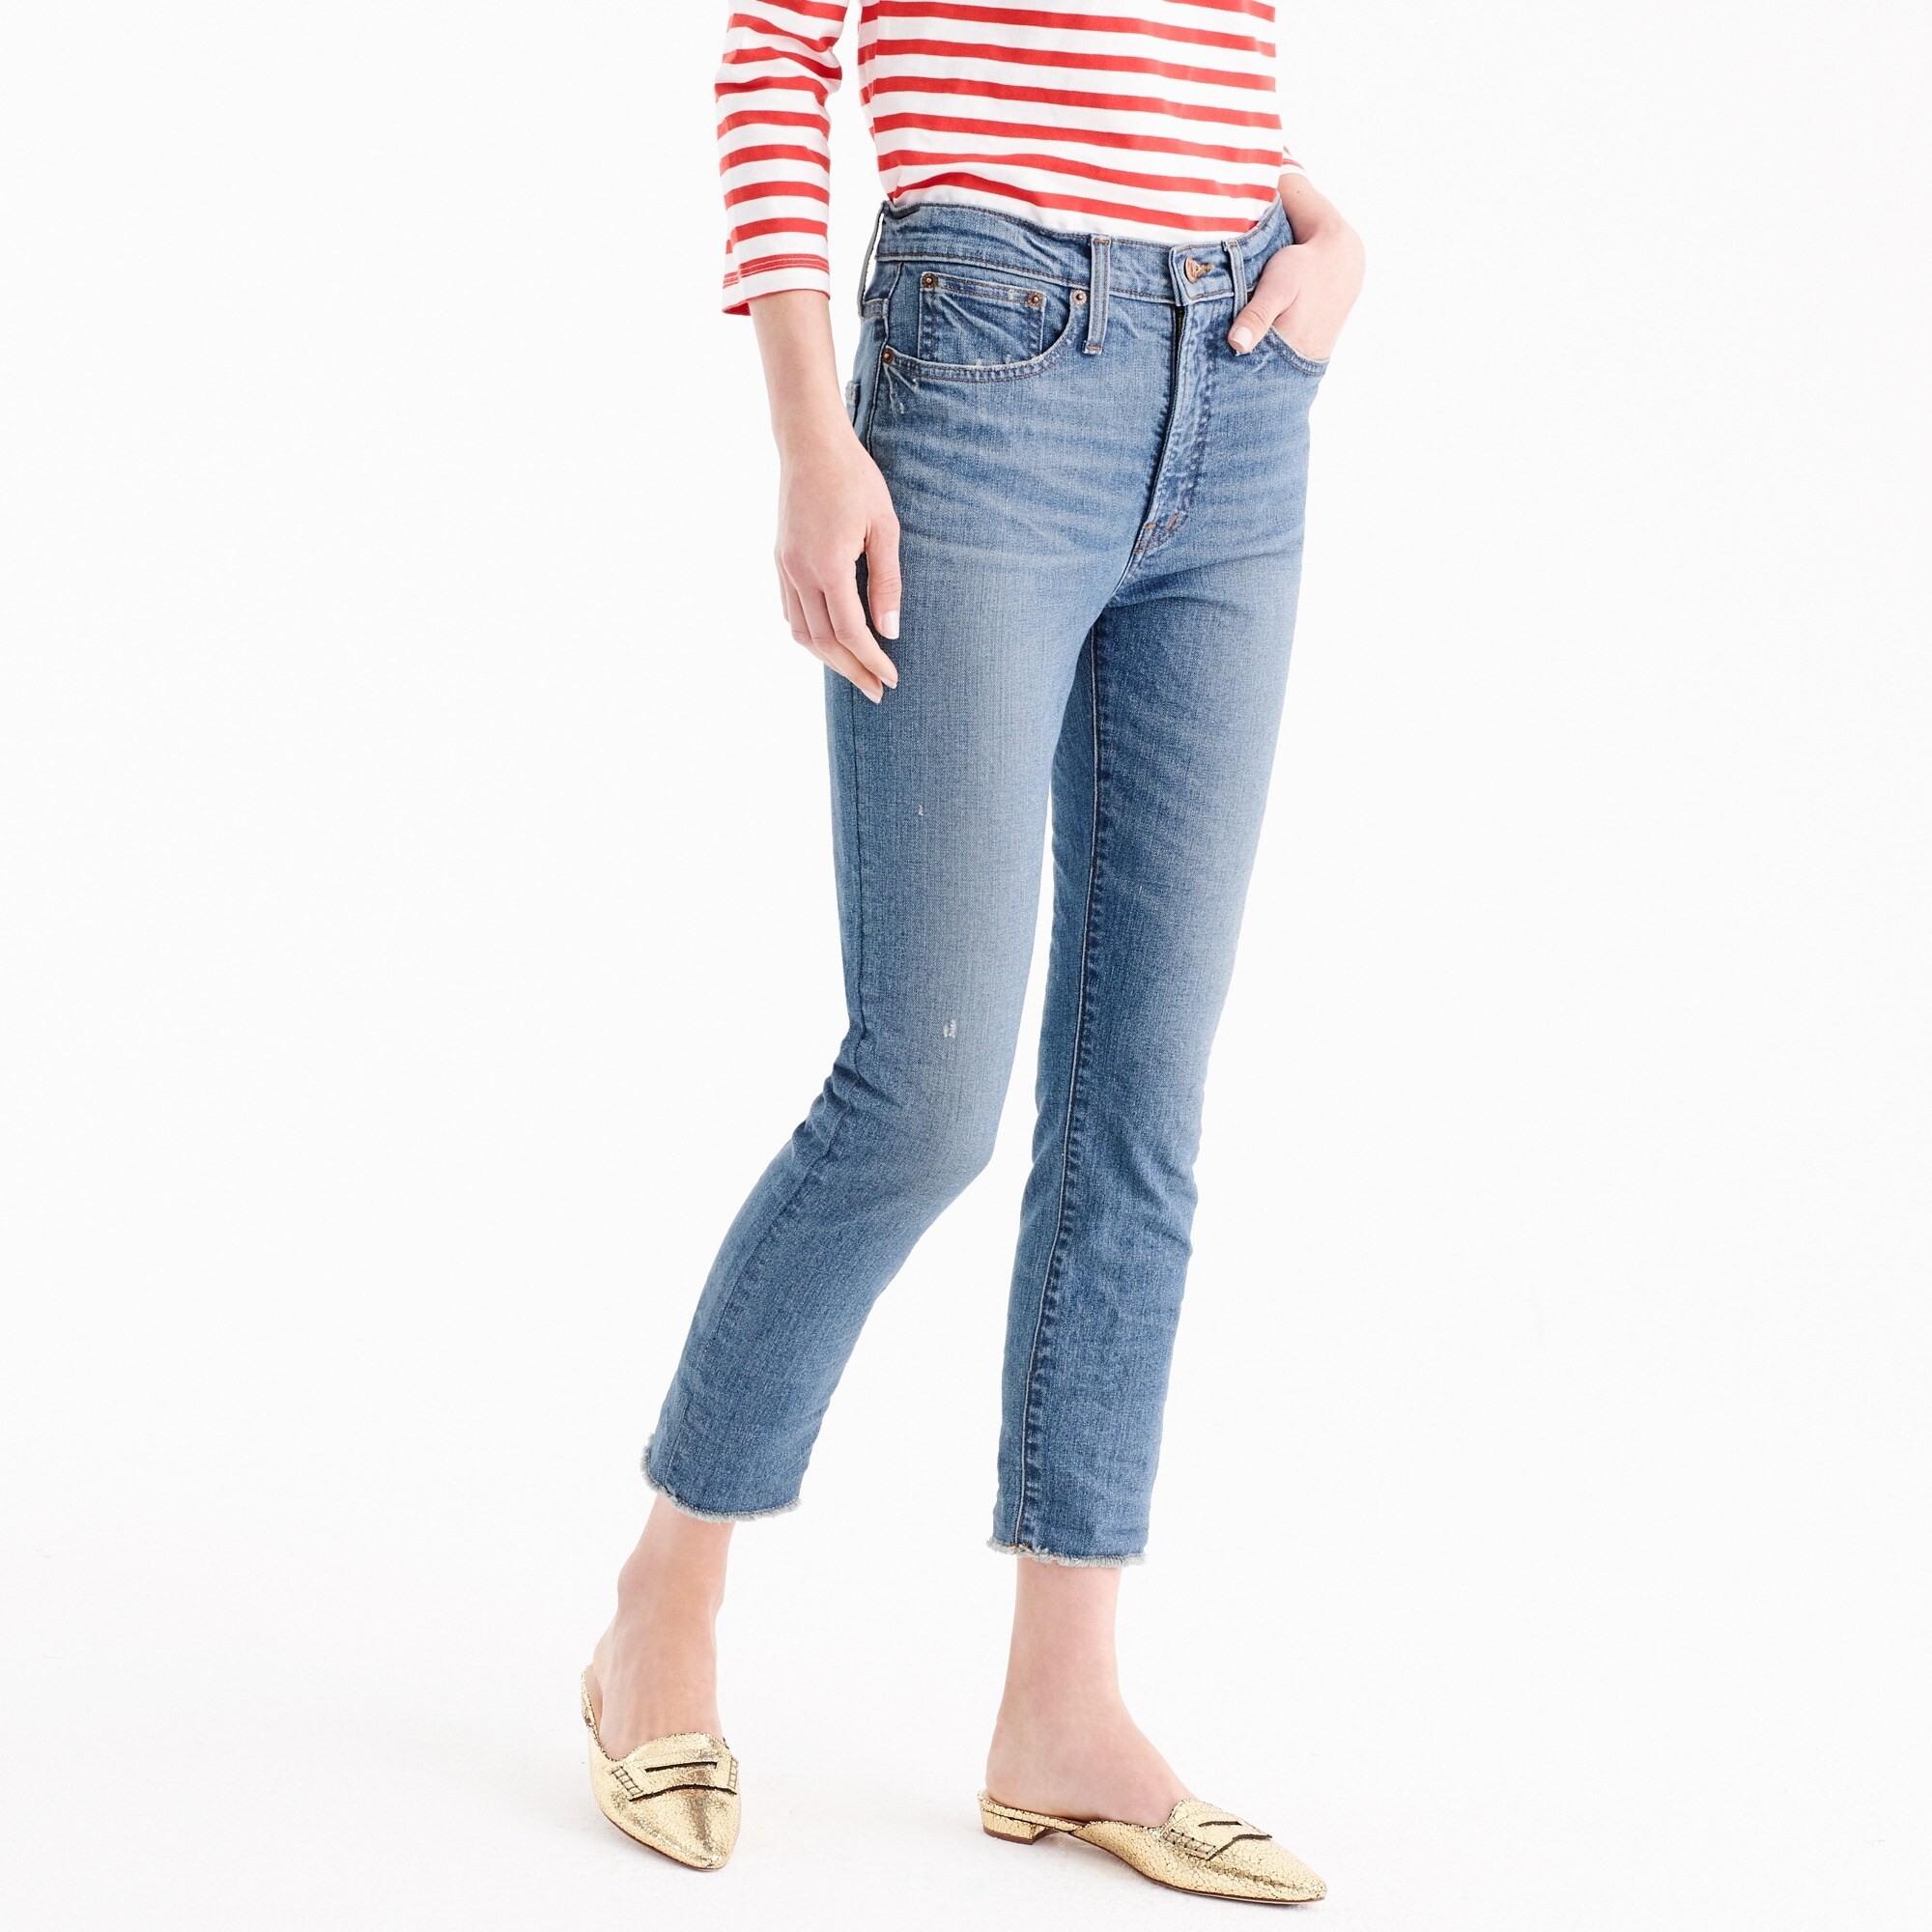 Tall vintage crop jean in Landers wash